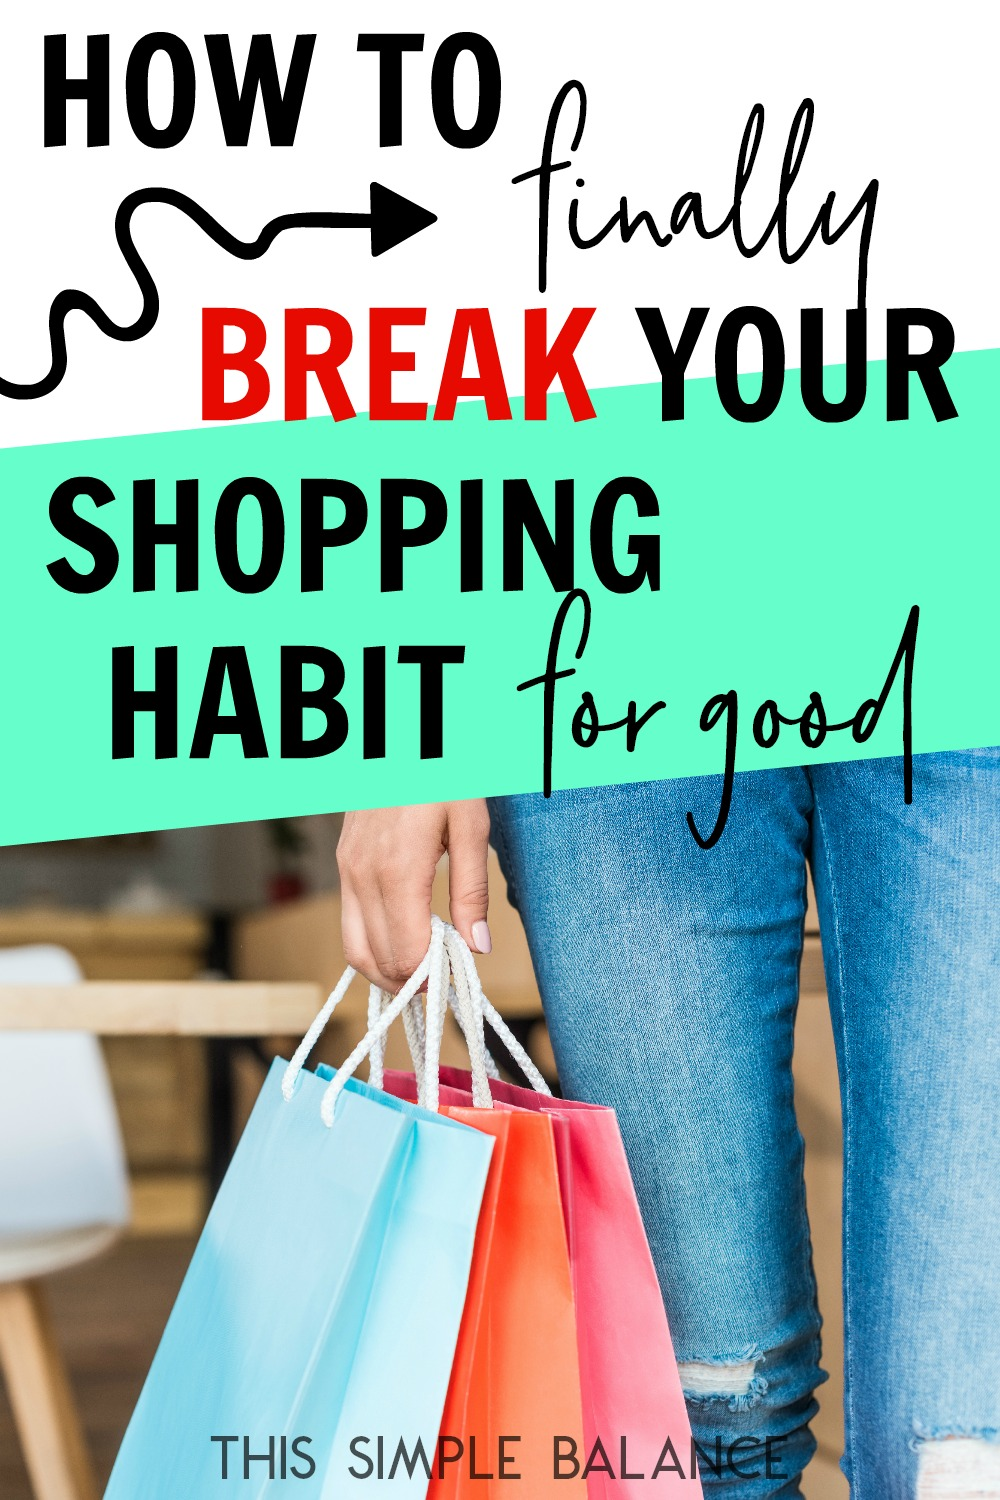 Want to stop shopping, but you've given up? Make this year the year to finally break your shopping habit: for good.